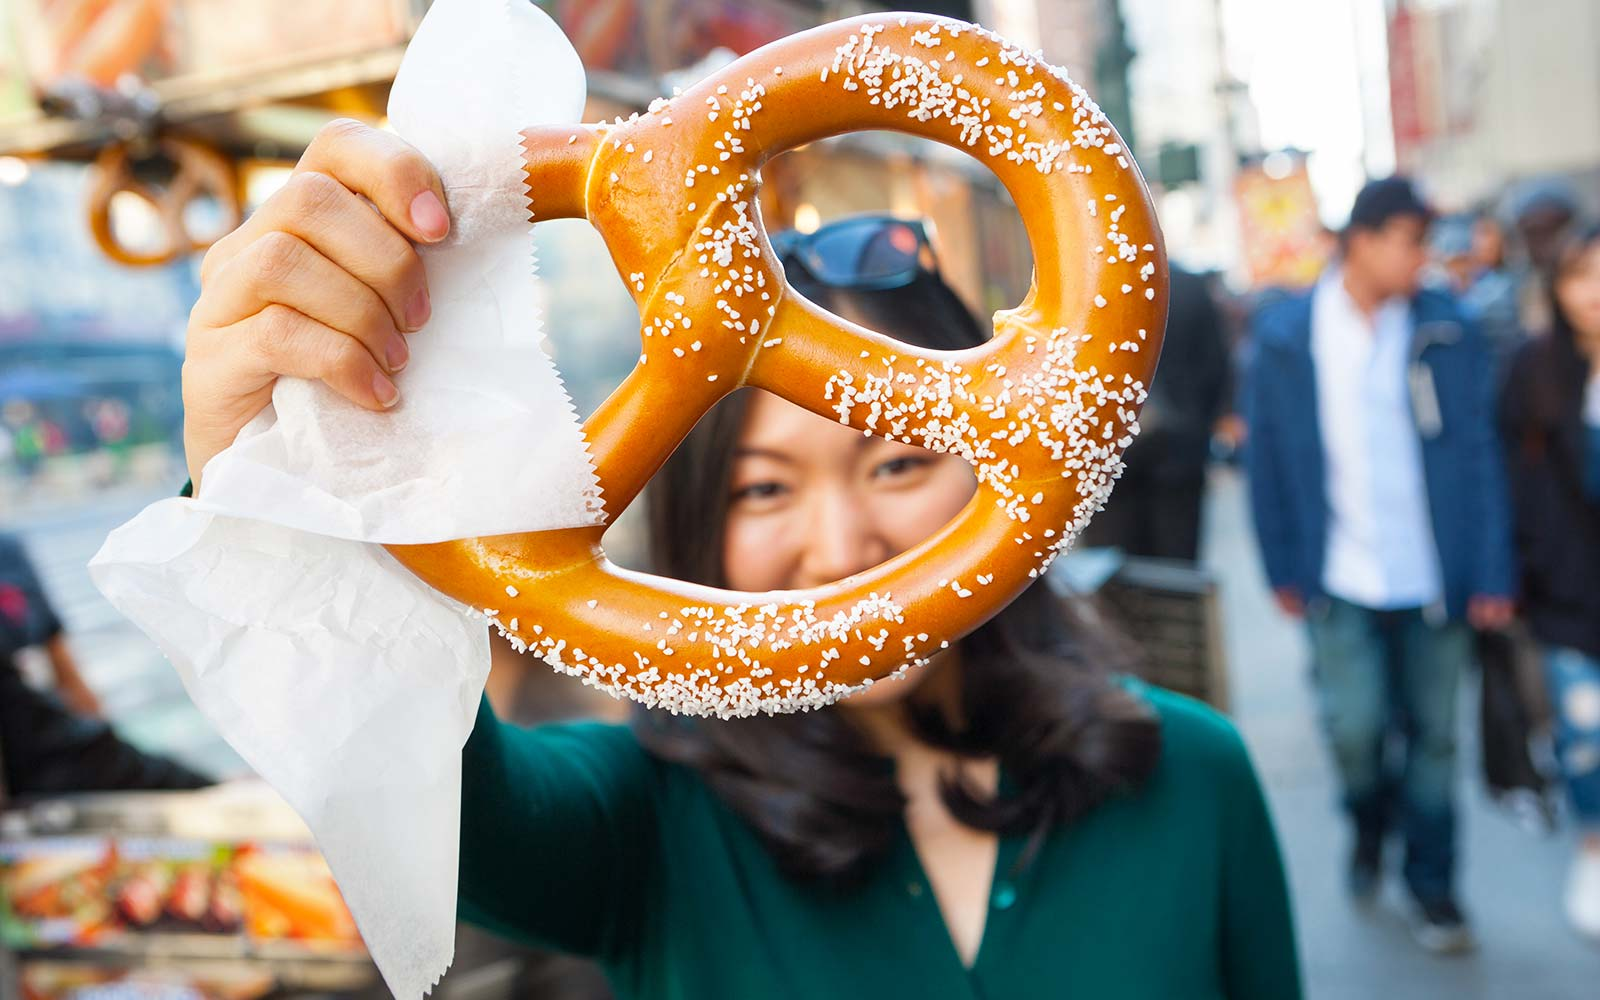 Here's Where You Can Find Freebies on National Pretzel Day